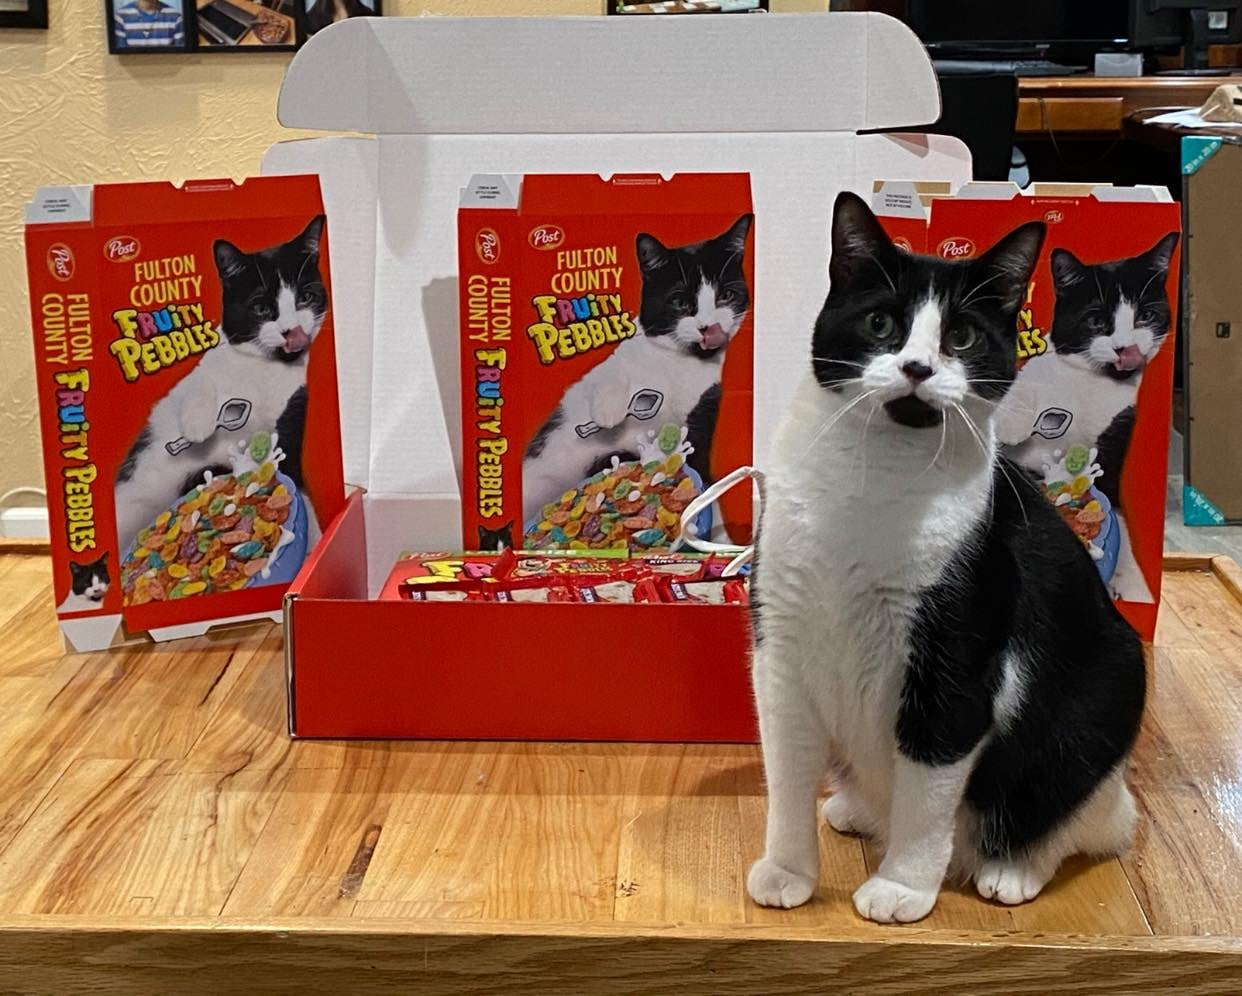 Cereal-Loving Rescue Cat Gets A Custom Delivery Of Fruity Pebbles